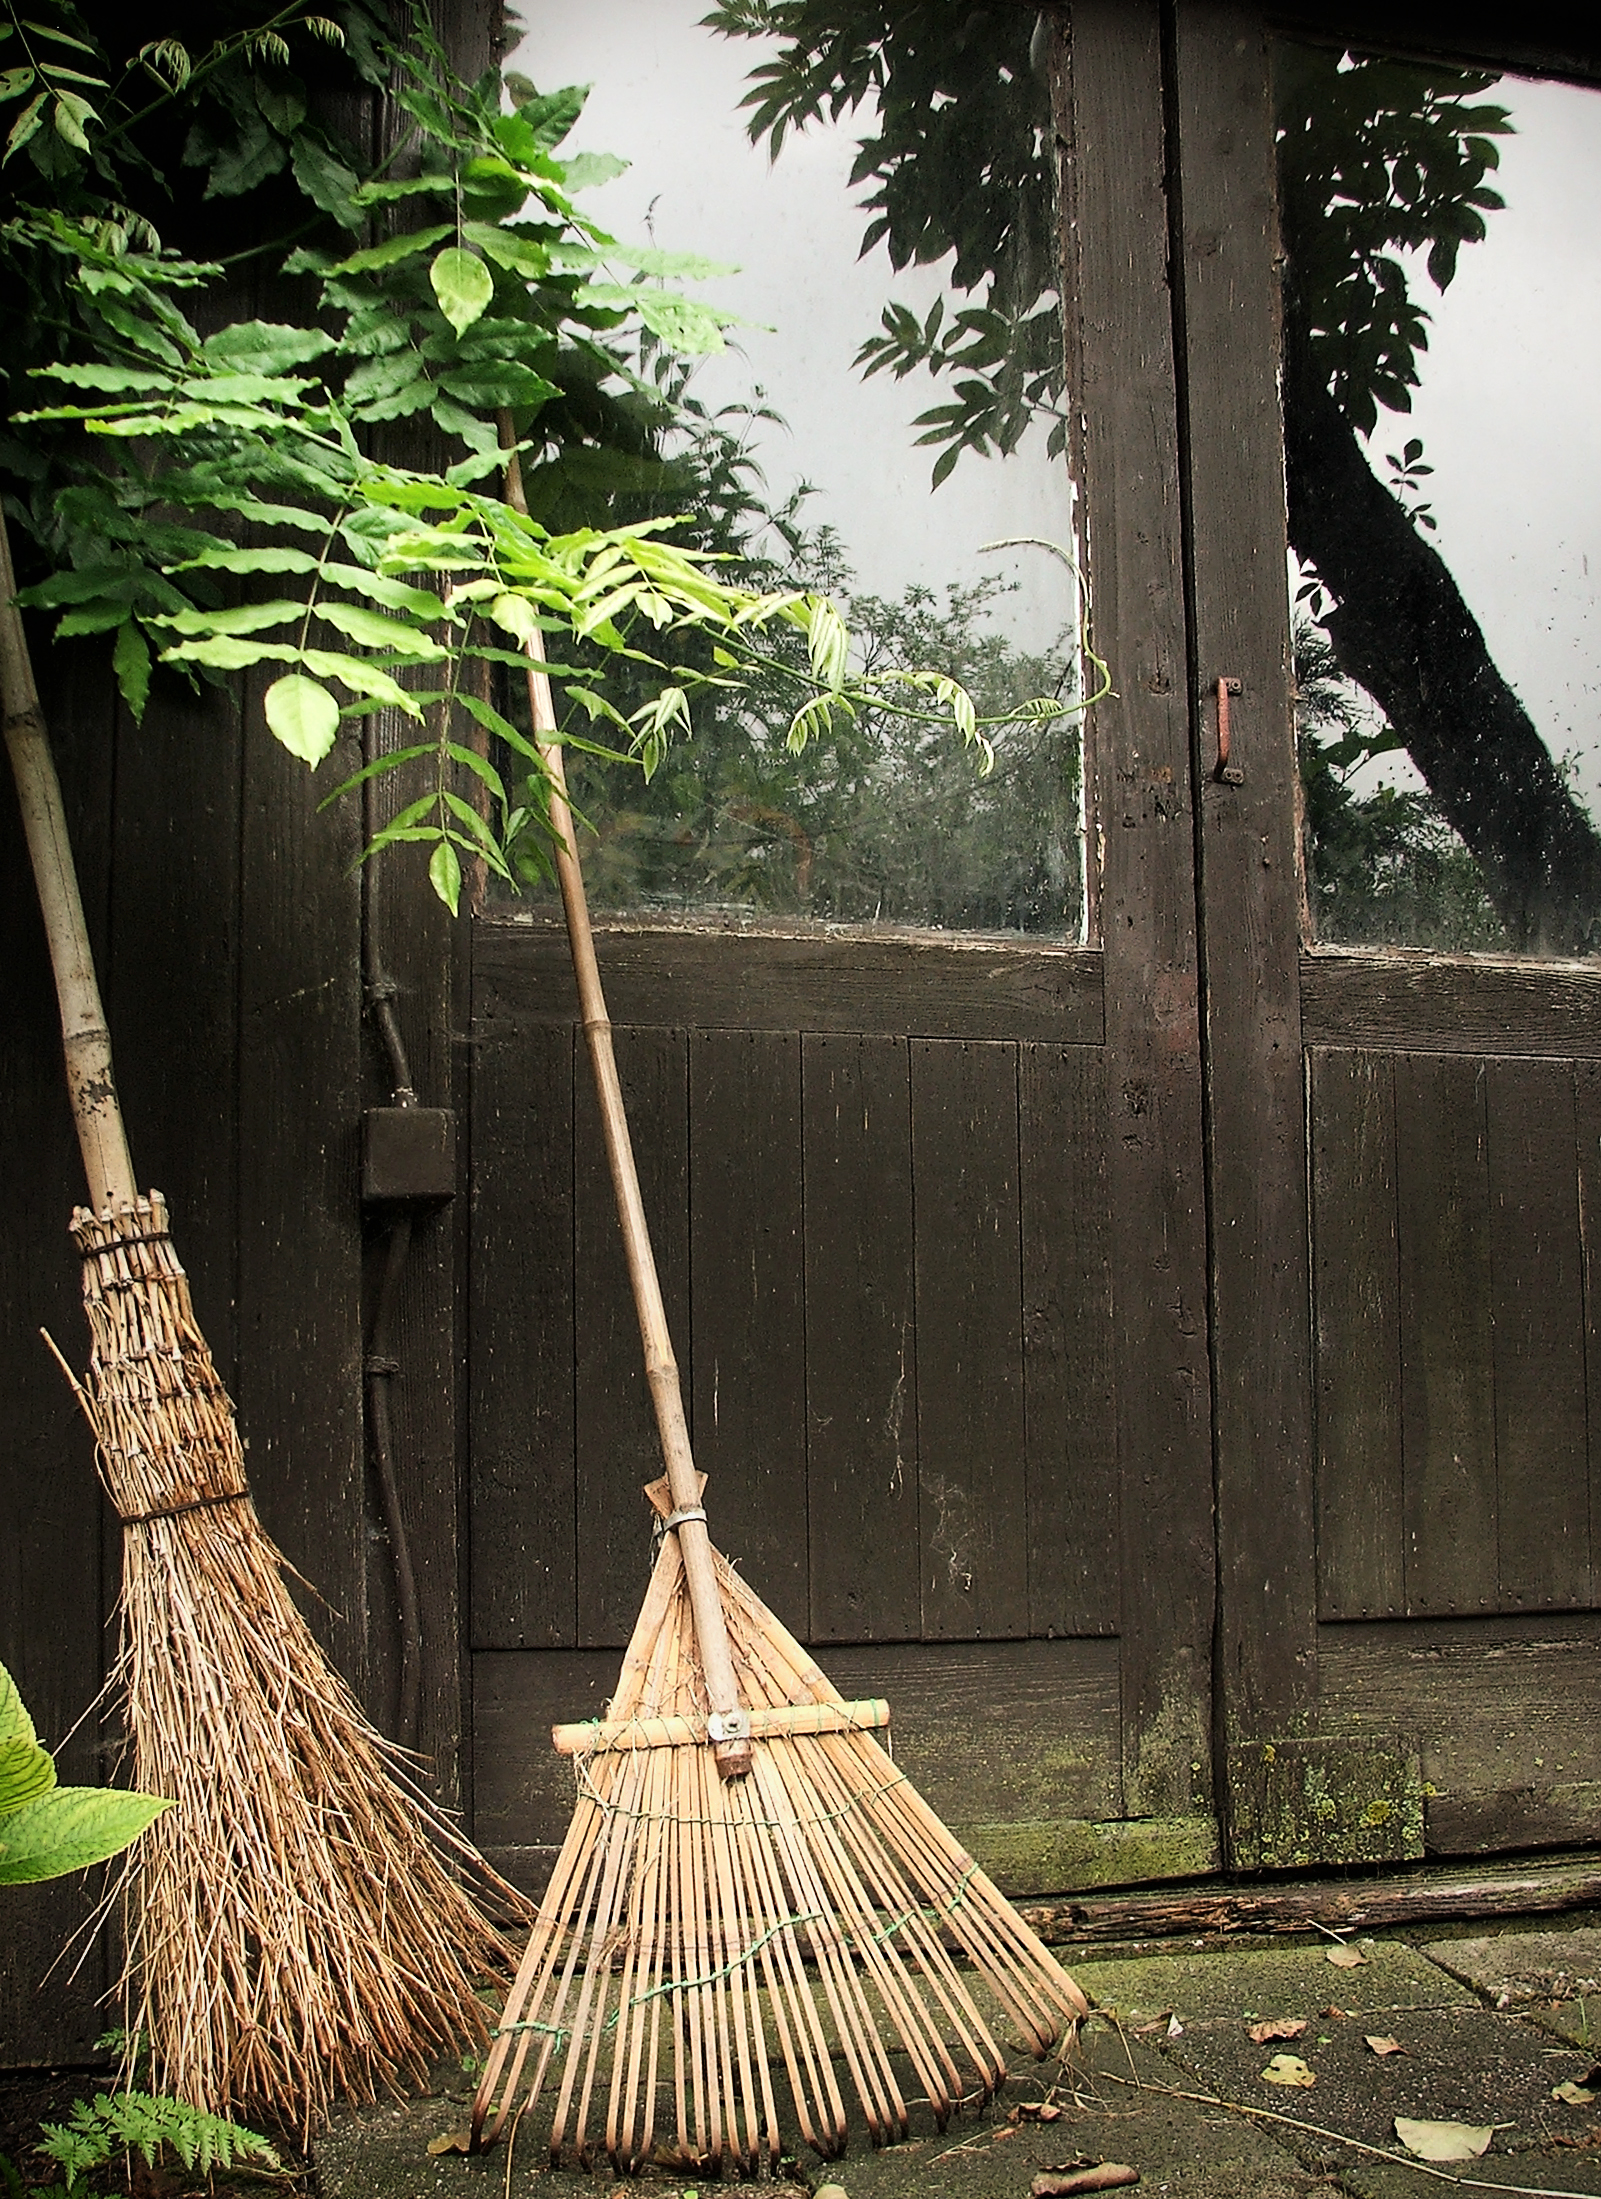 Broomsticks by a farm, Broom, Cleaning, Countryside, Doors, HQ Photo